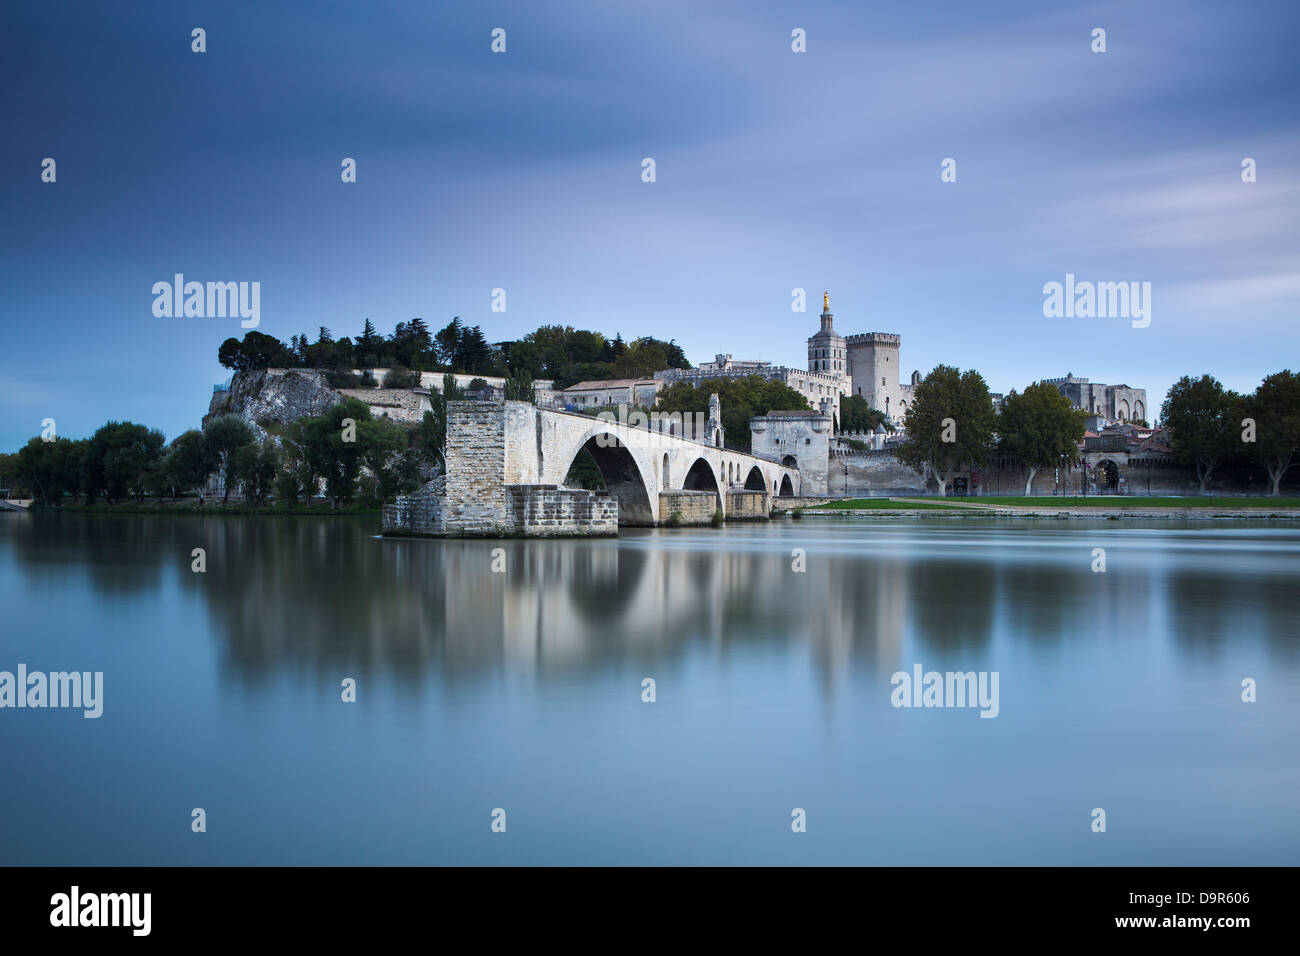 the Pont St-Bénézet, Palais des Papes & Rhone River at dusk, Avignon, Provence, France - Stock Image